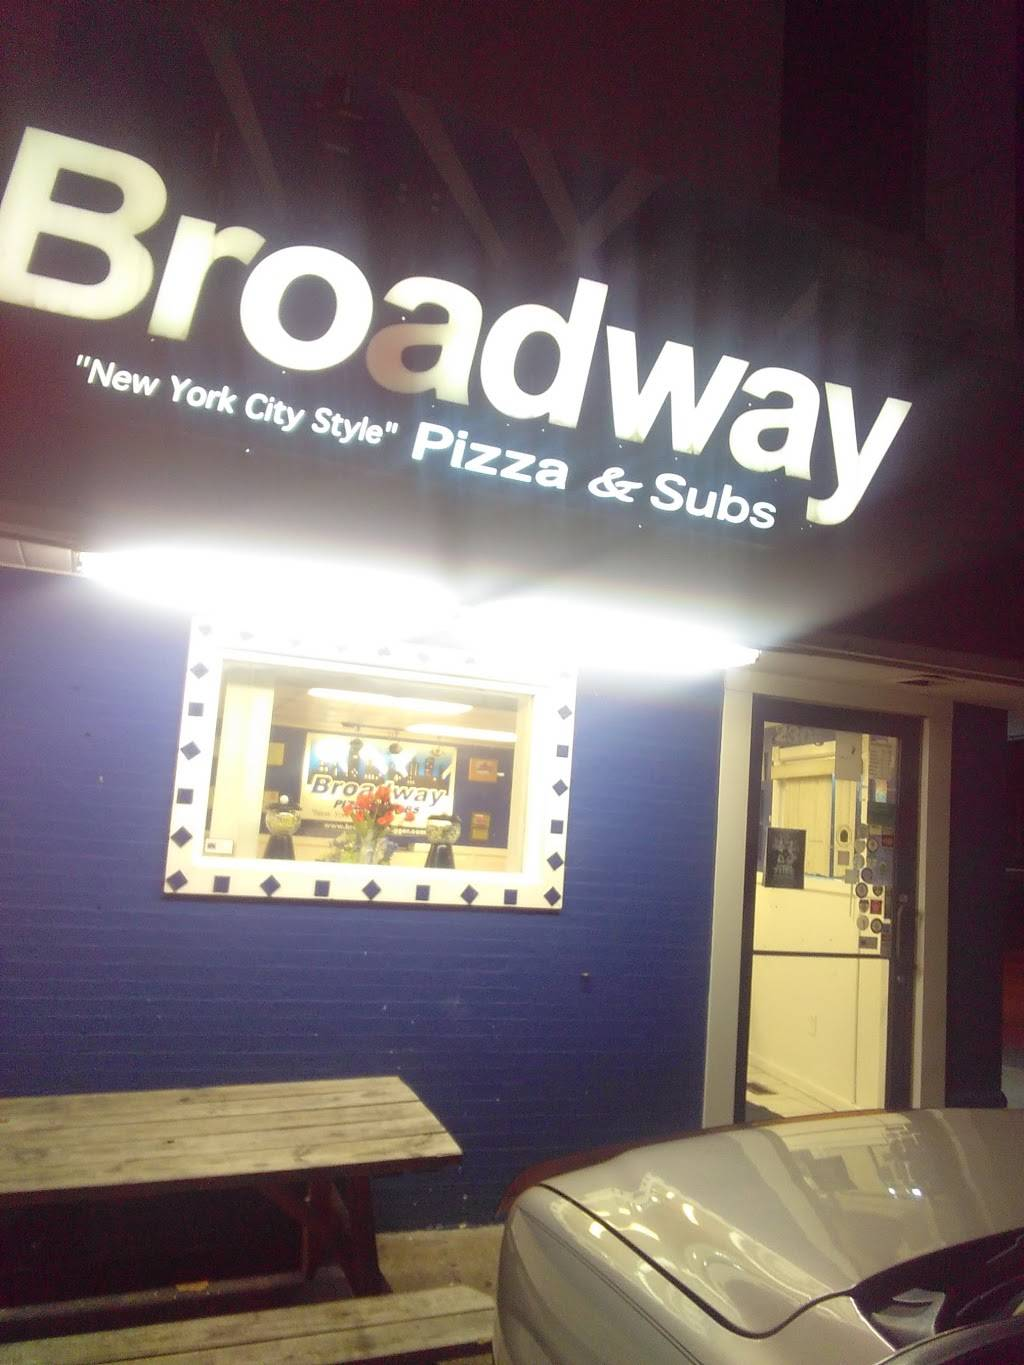 Broadway Pizza | restaurant | 2305 Versailles Ave, McKeesport, PA 15132, USA | 4126736928 OR +1 412-673-6928